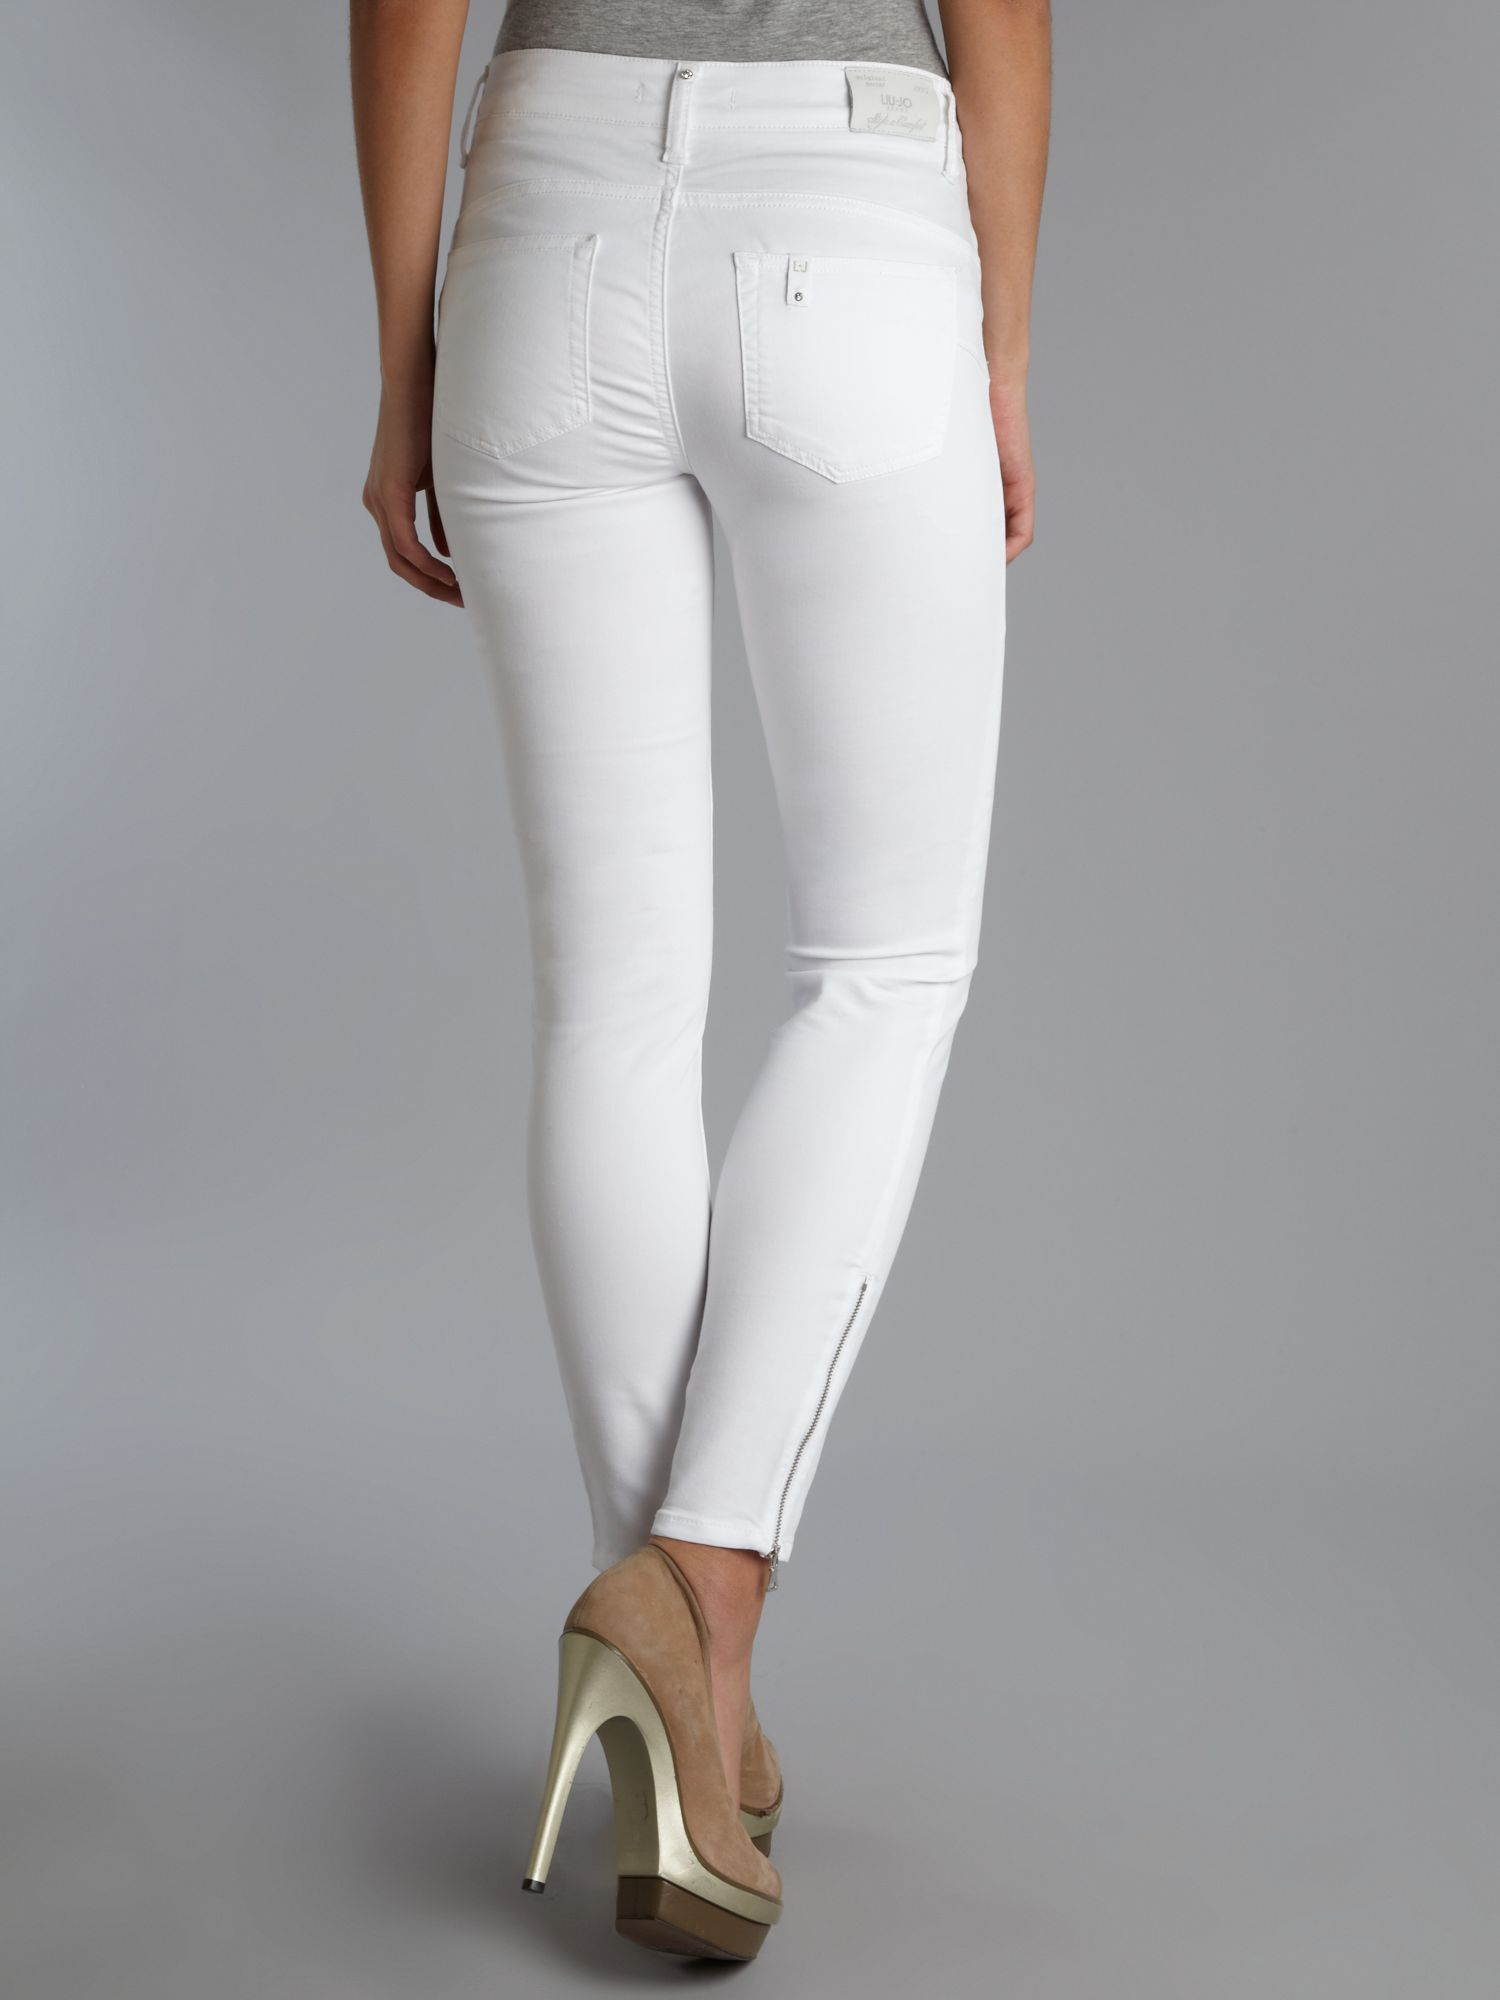 White Ankle Zip Skinny Jeans - Jeans Am